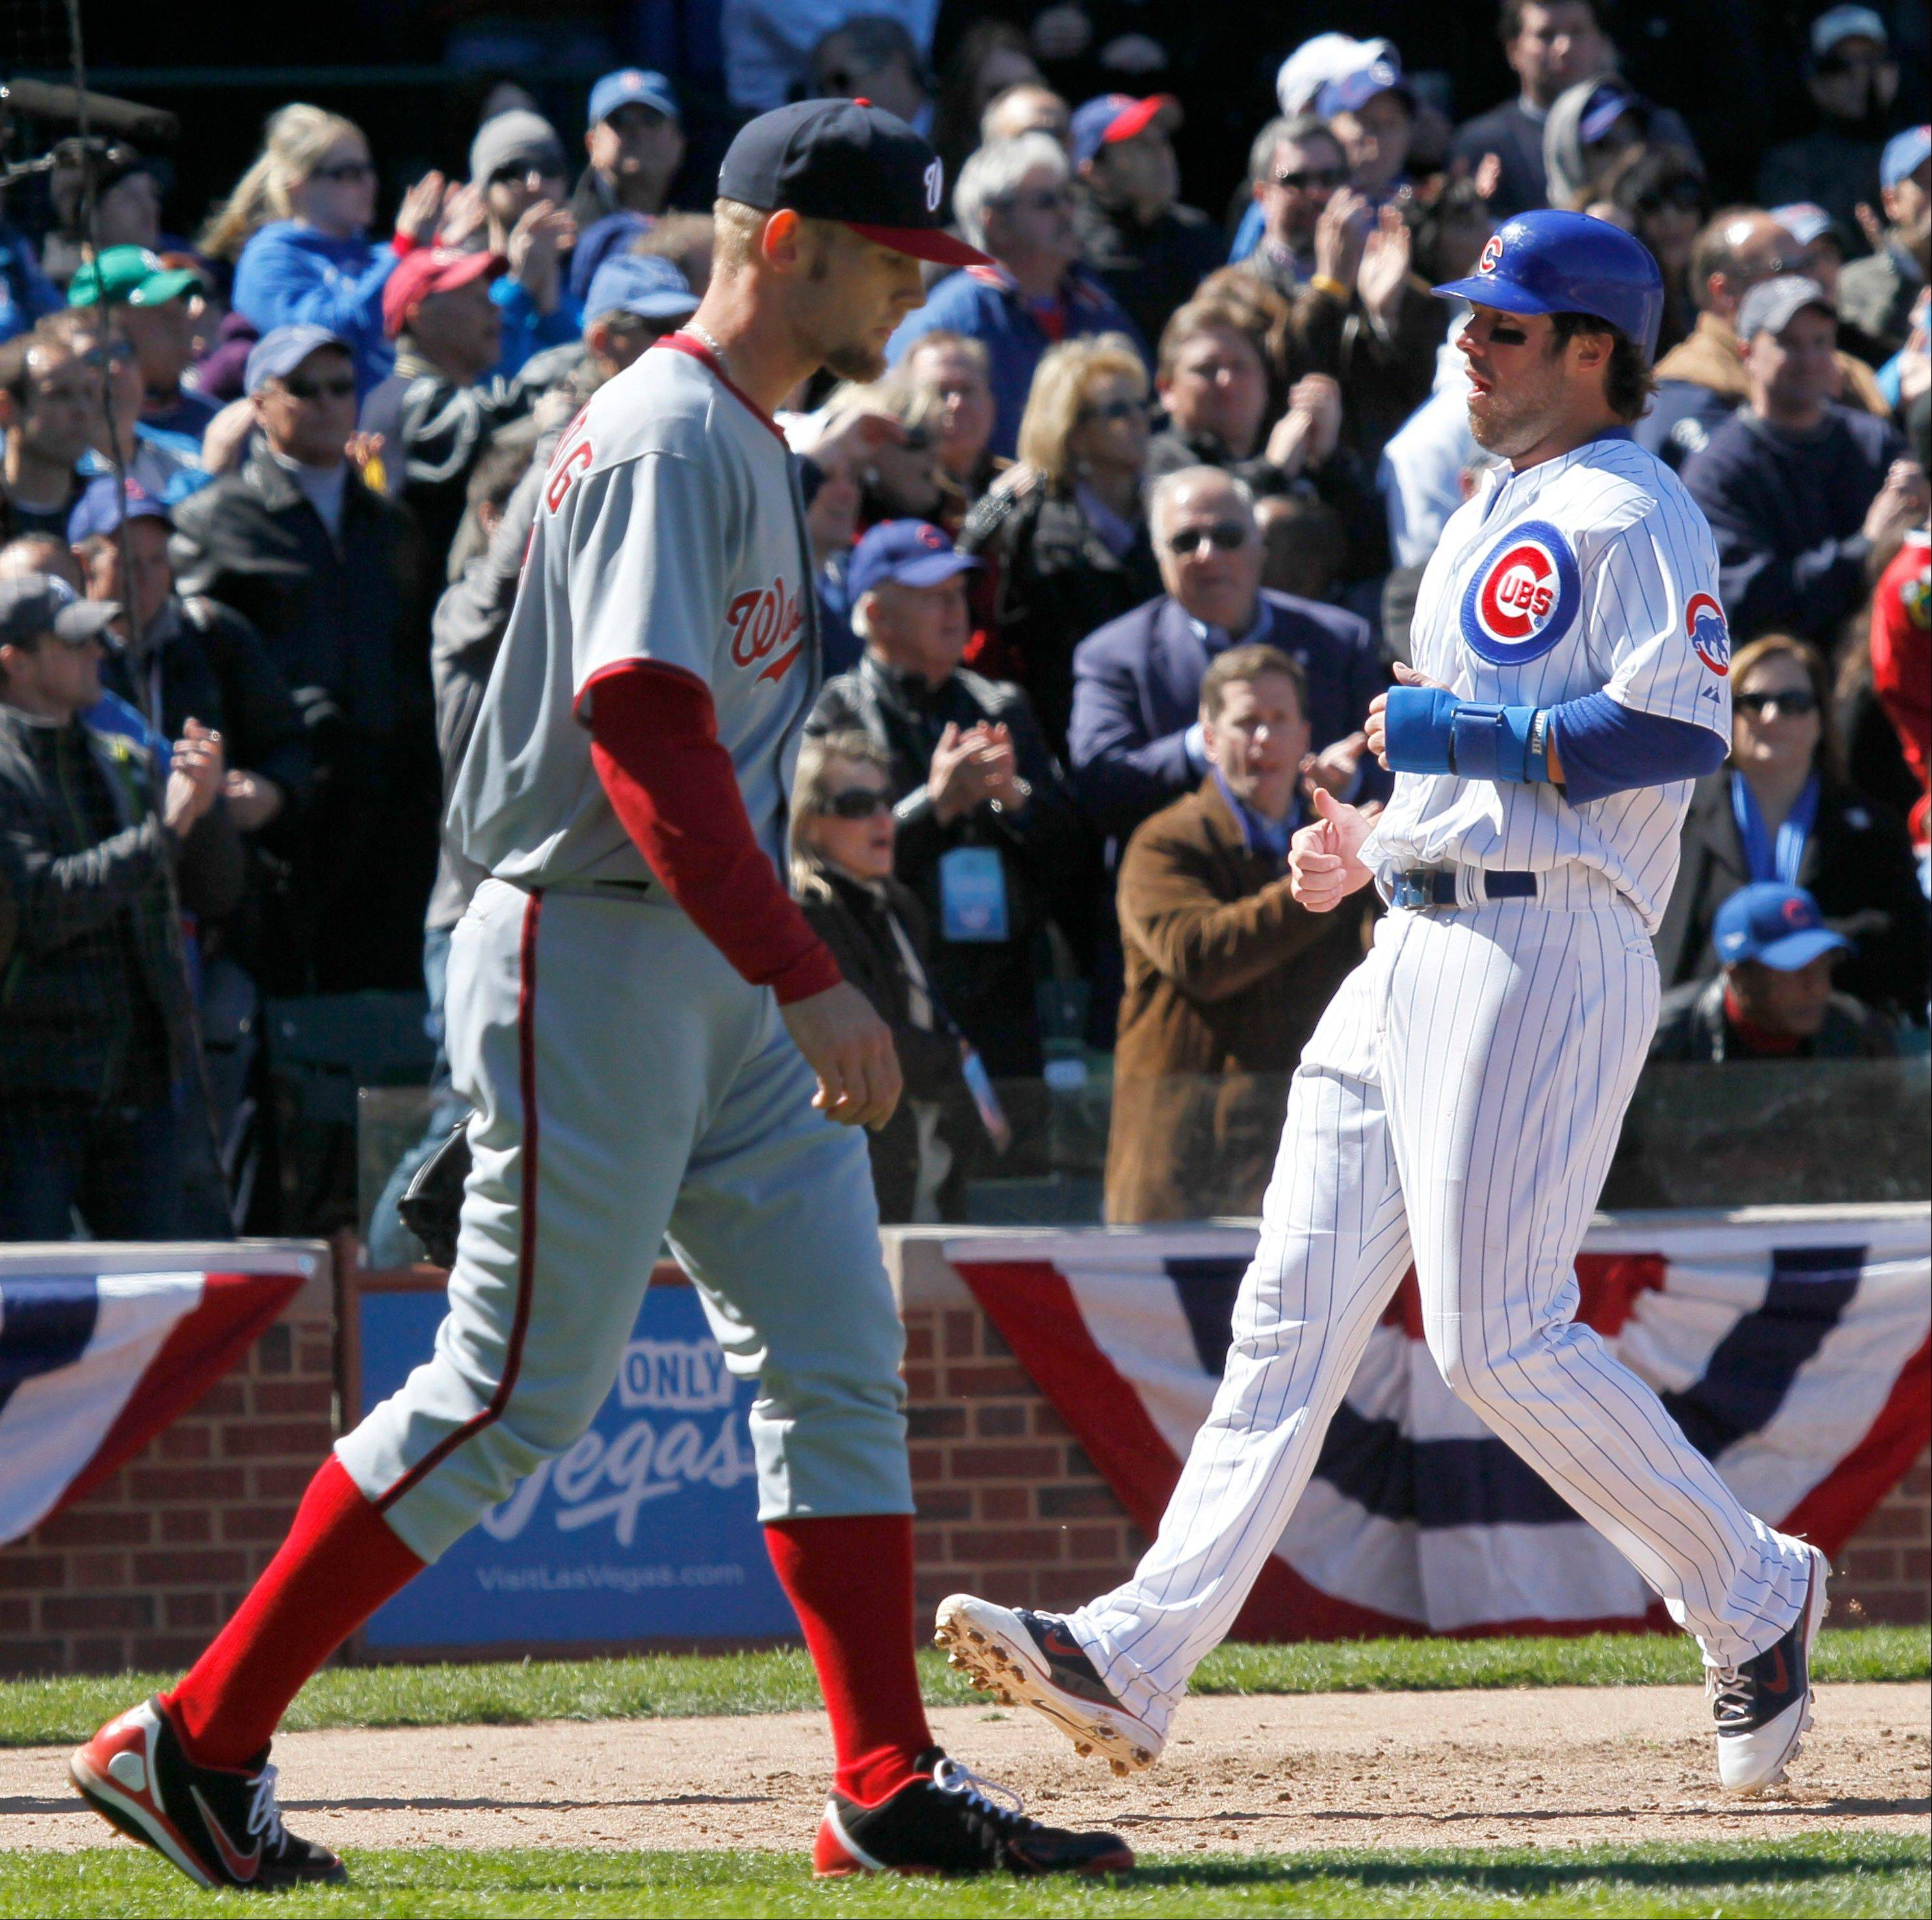 Images: Cubs' home opener